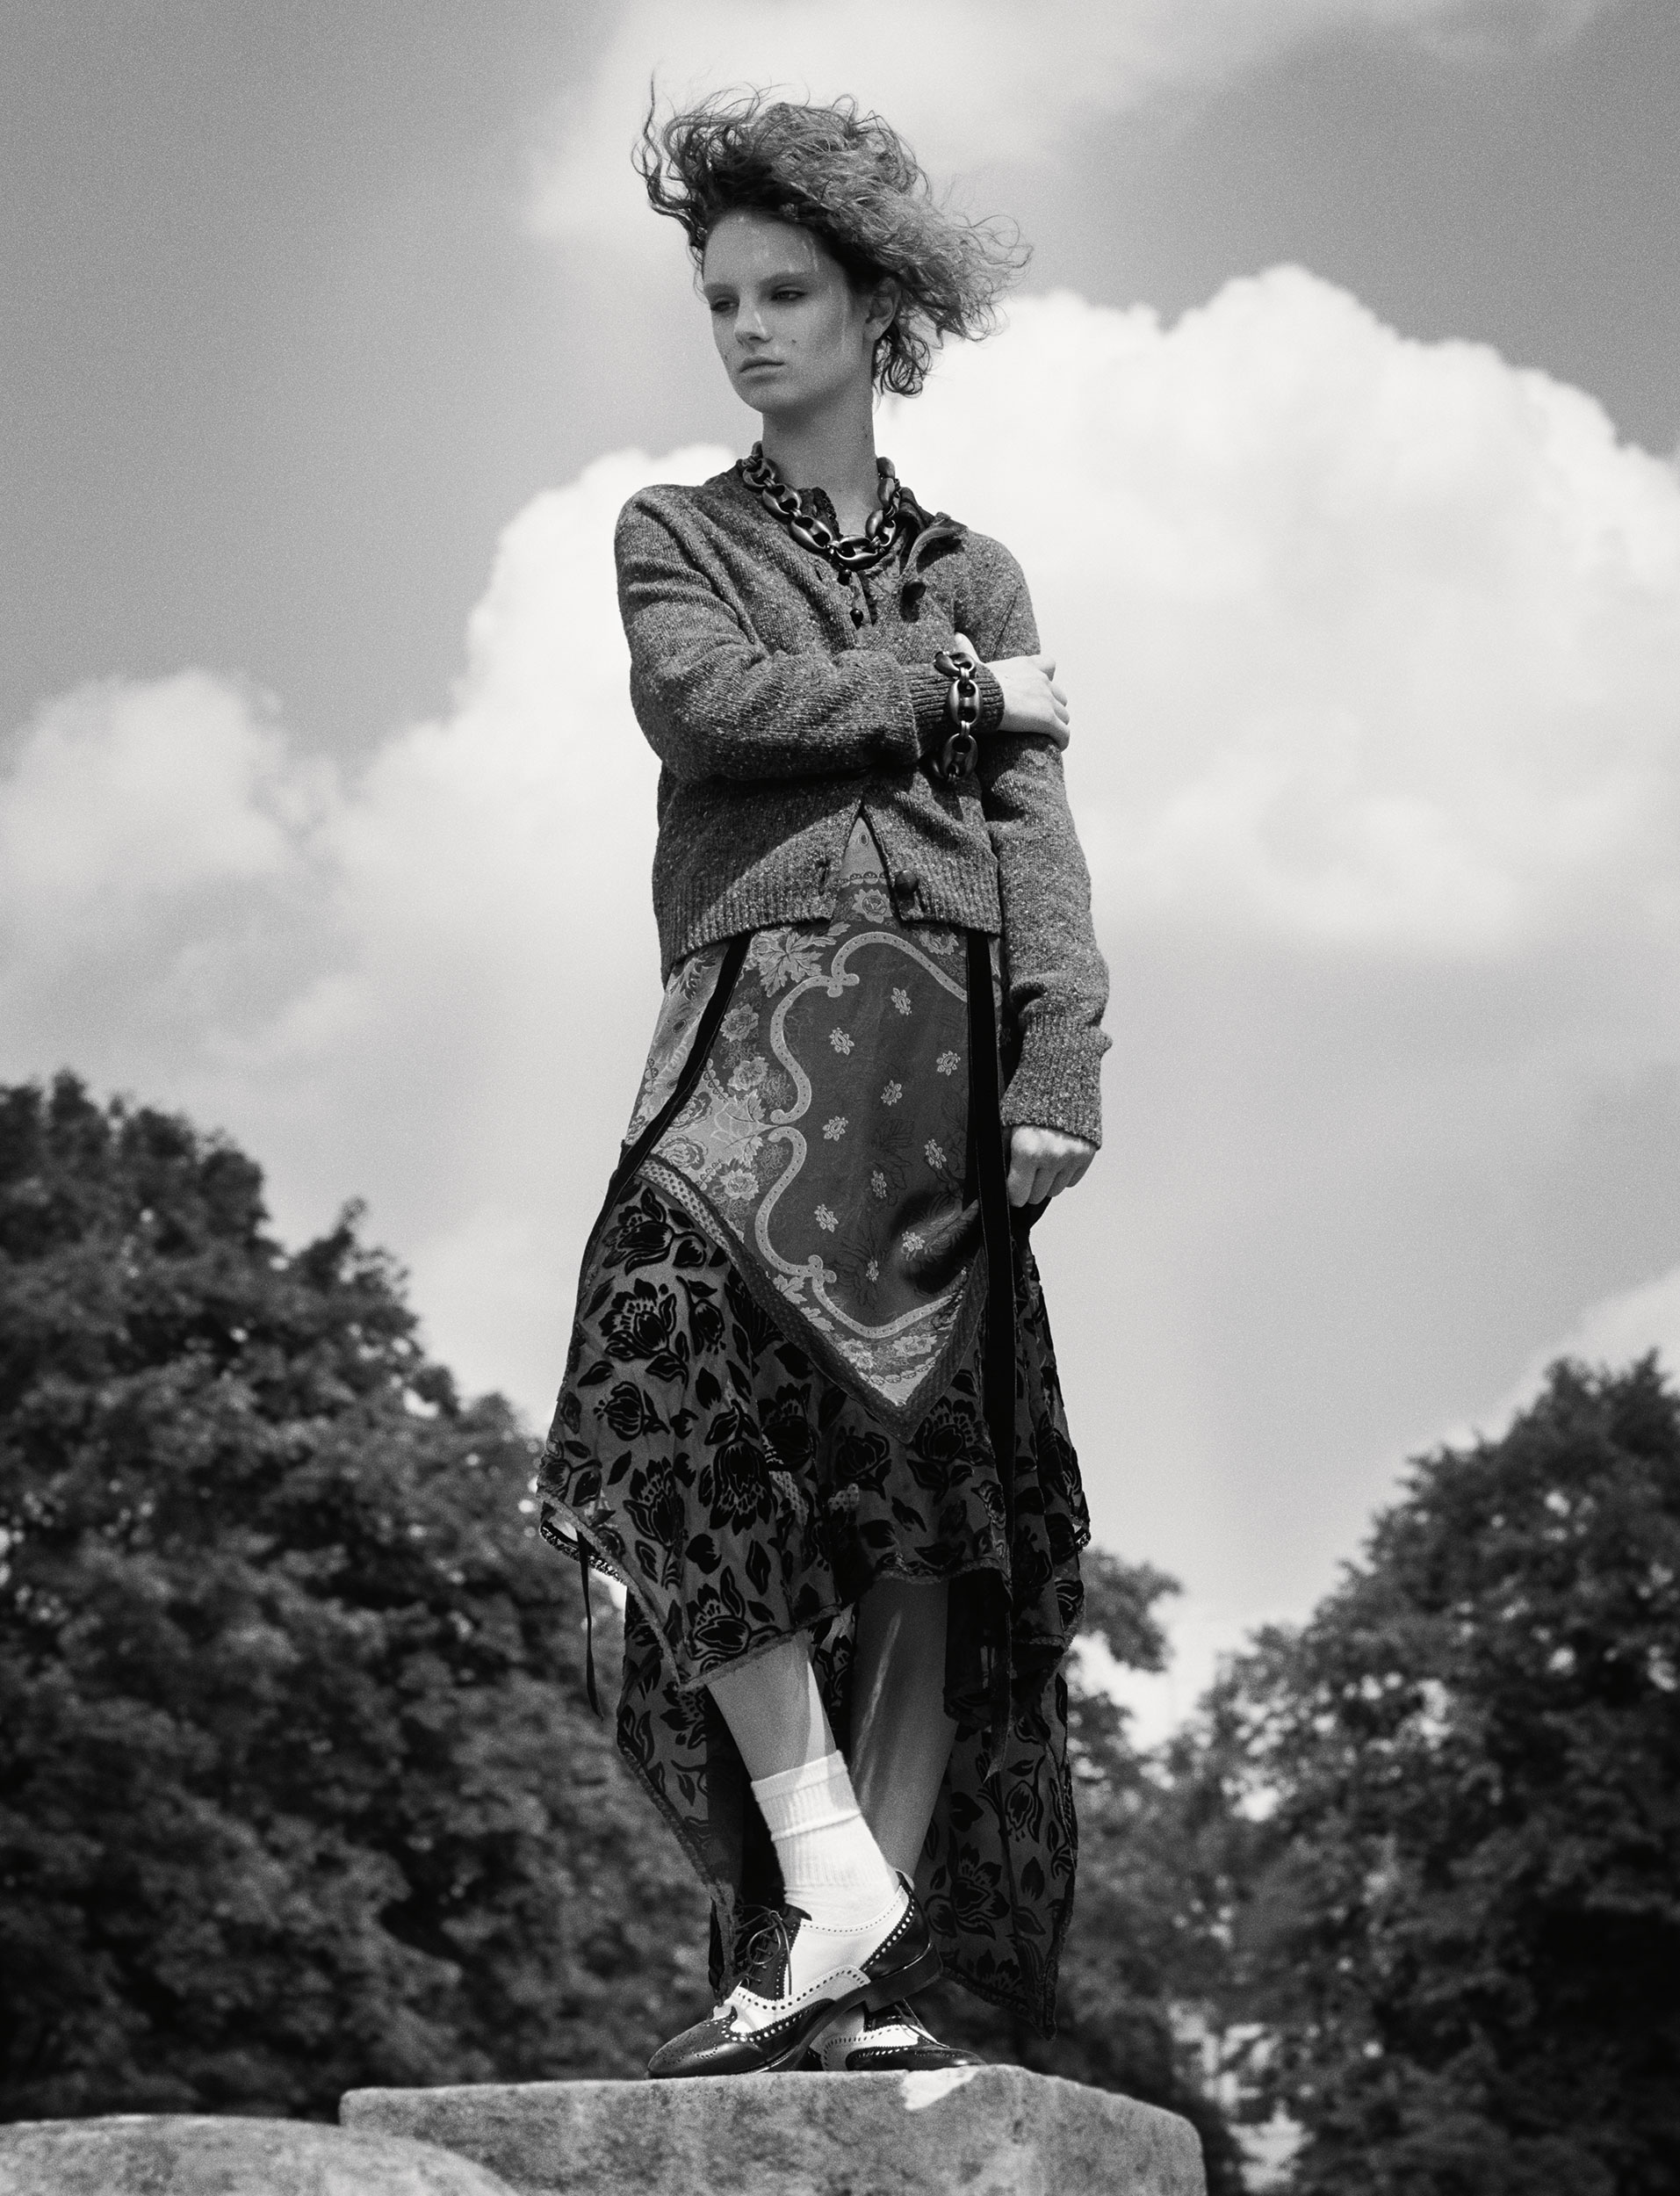 Giselle Norman by Theo Sion for i-D